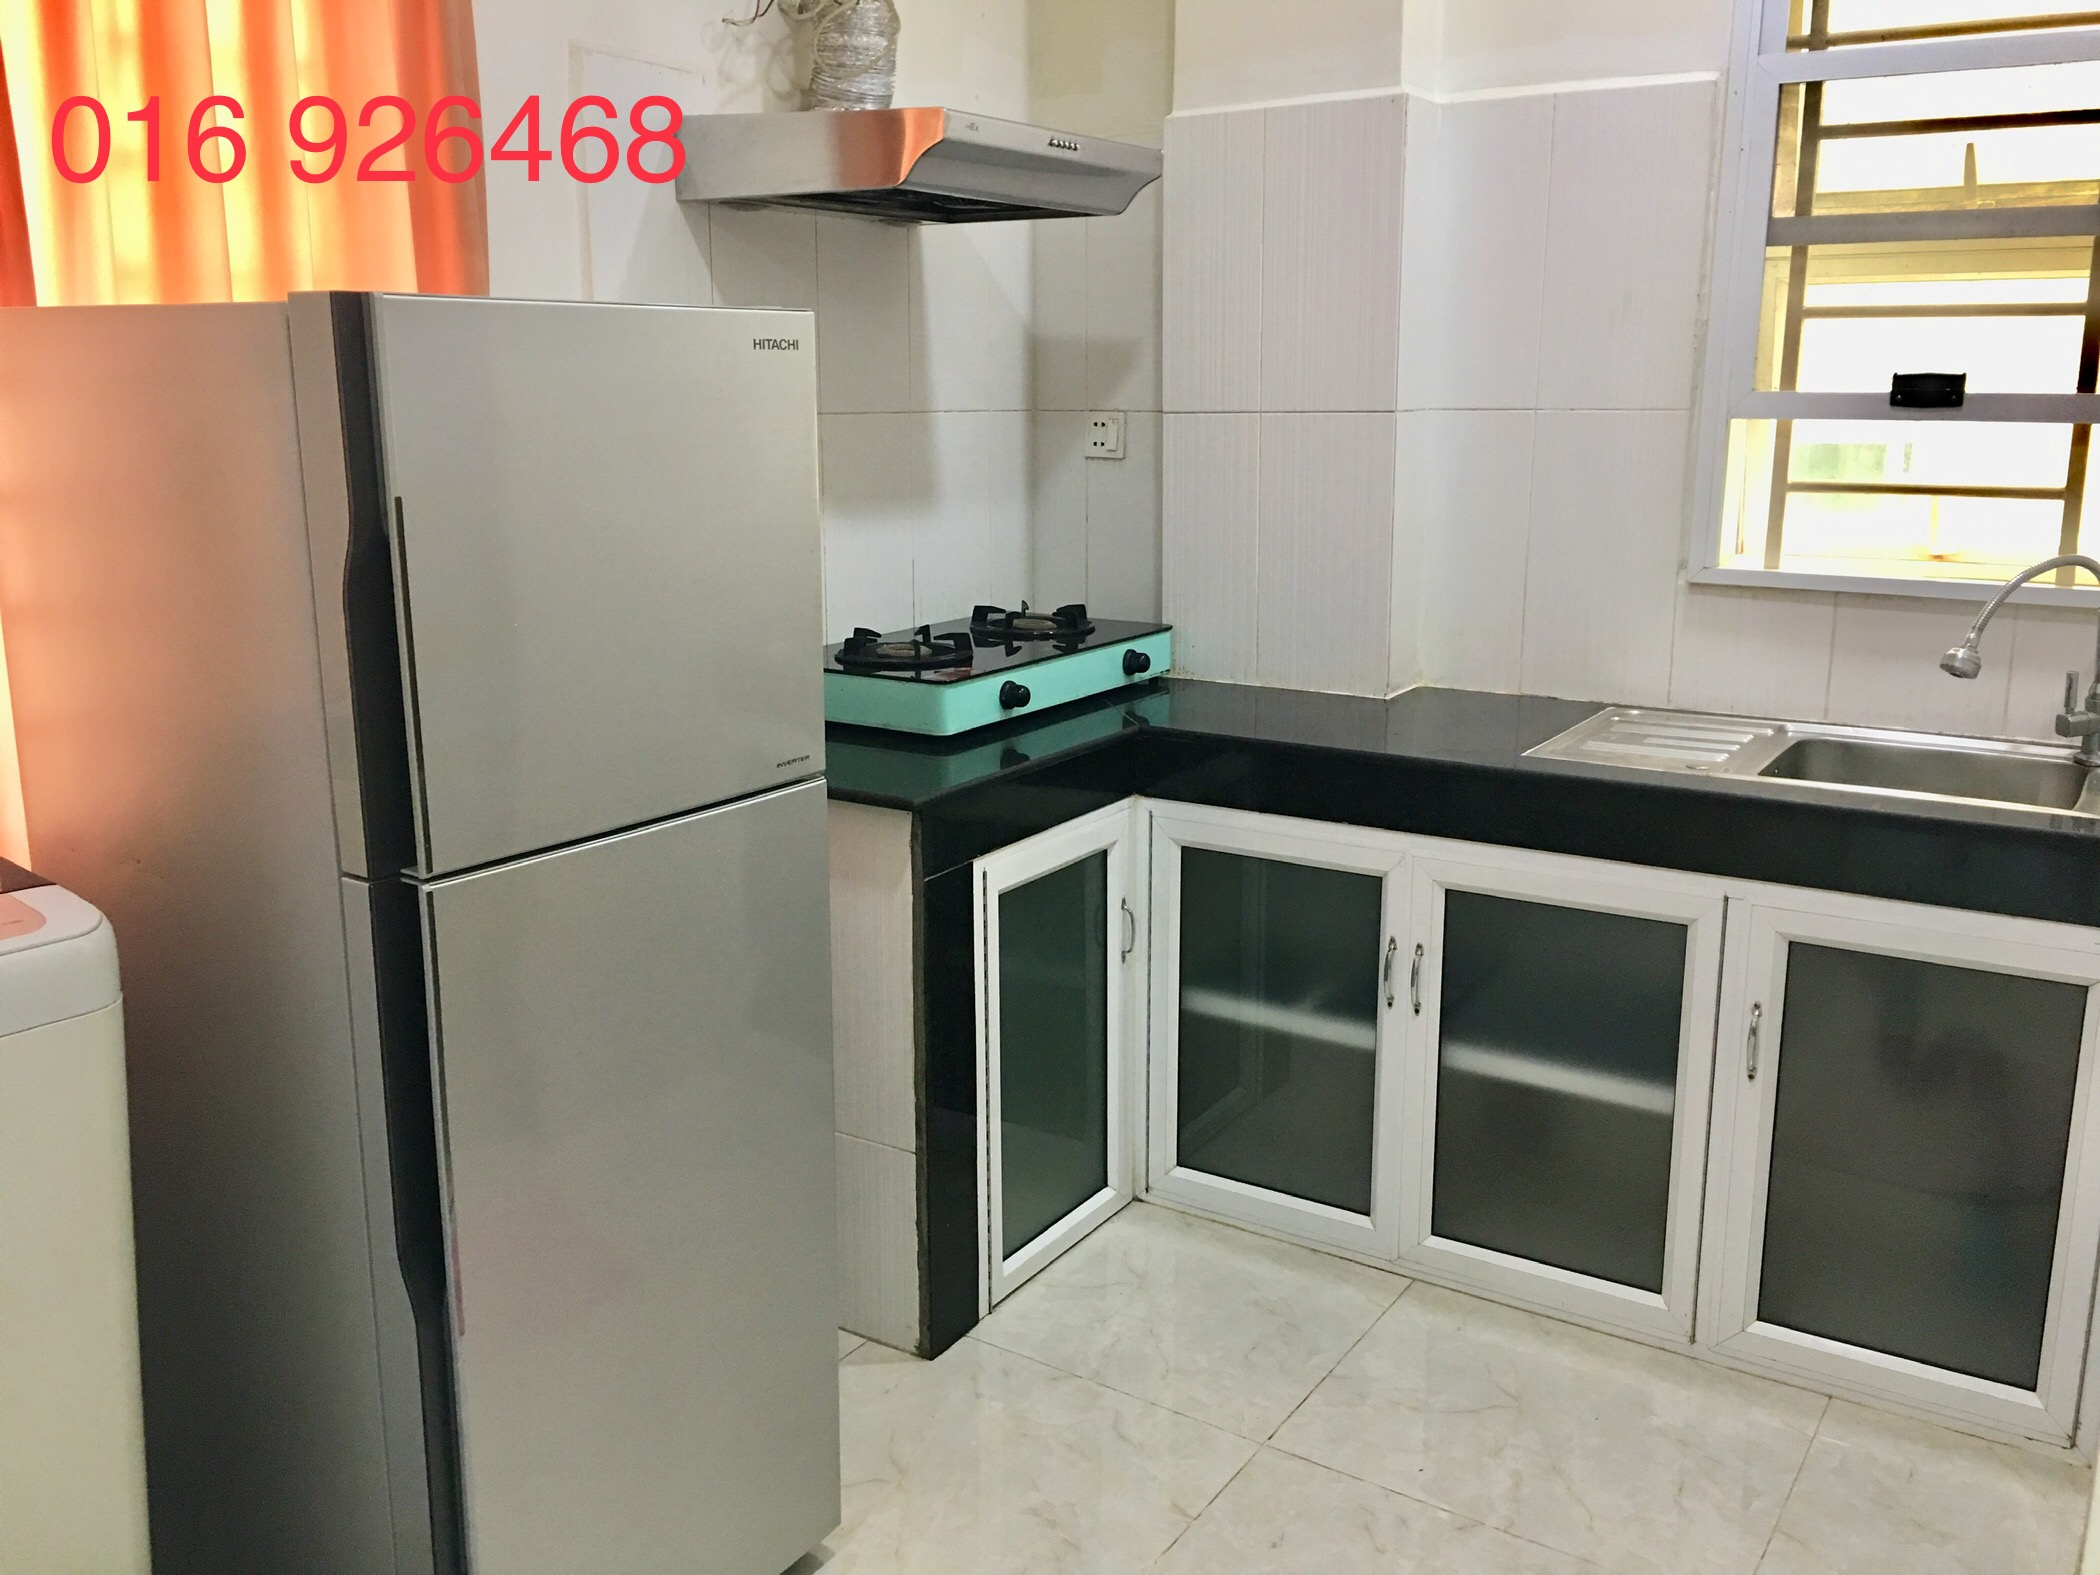 2 Bedrooms Fully Furnished Elevator Apartment For Rent,Tuol Kork